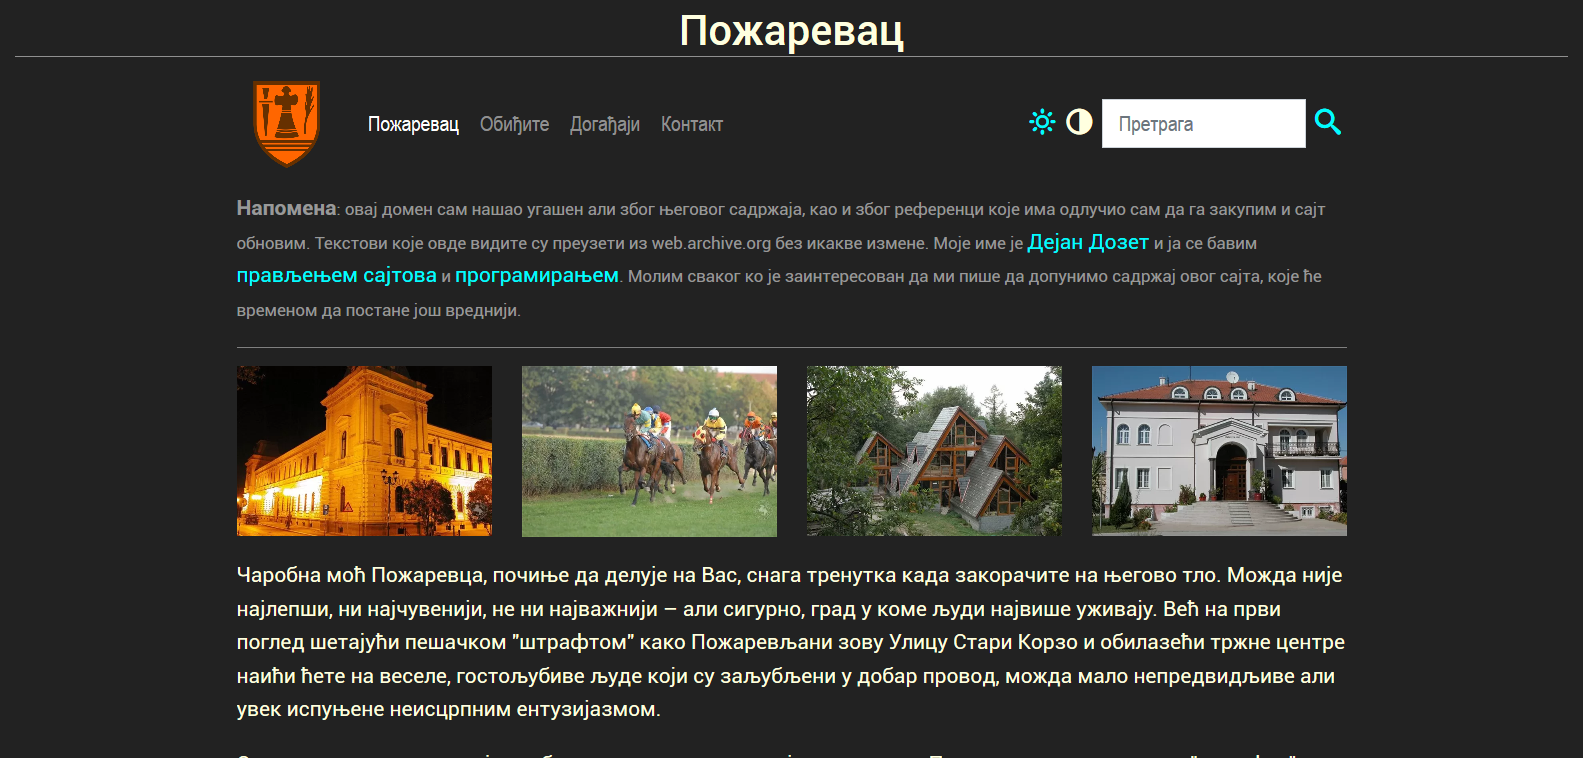 Website design - topozarevac.rs